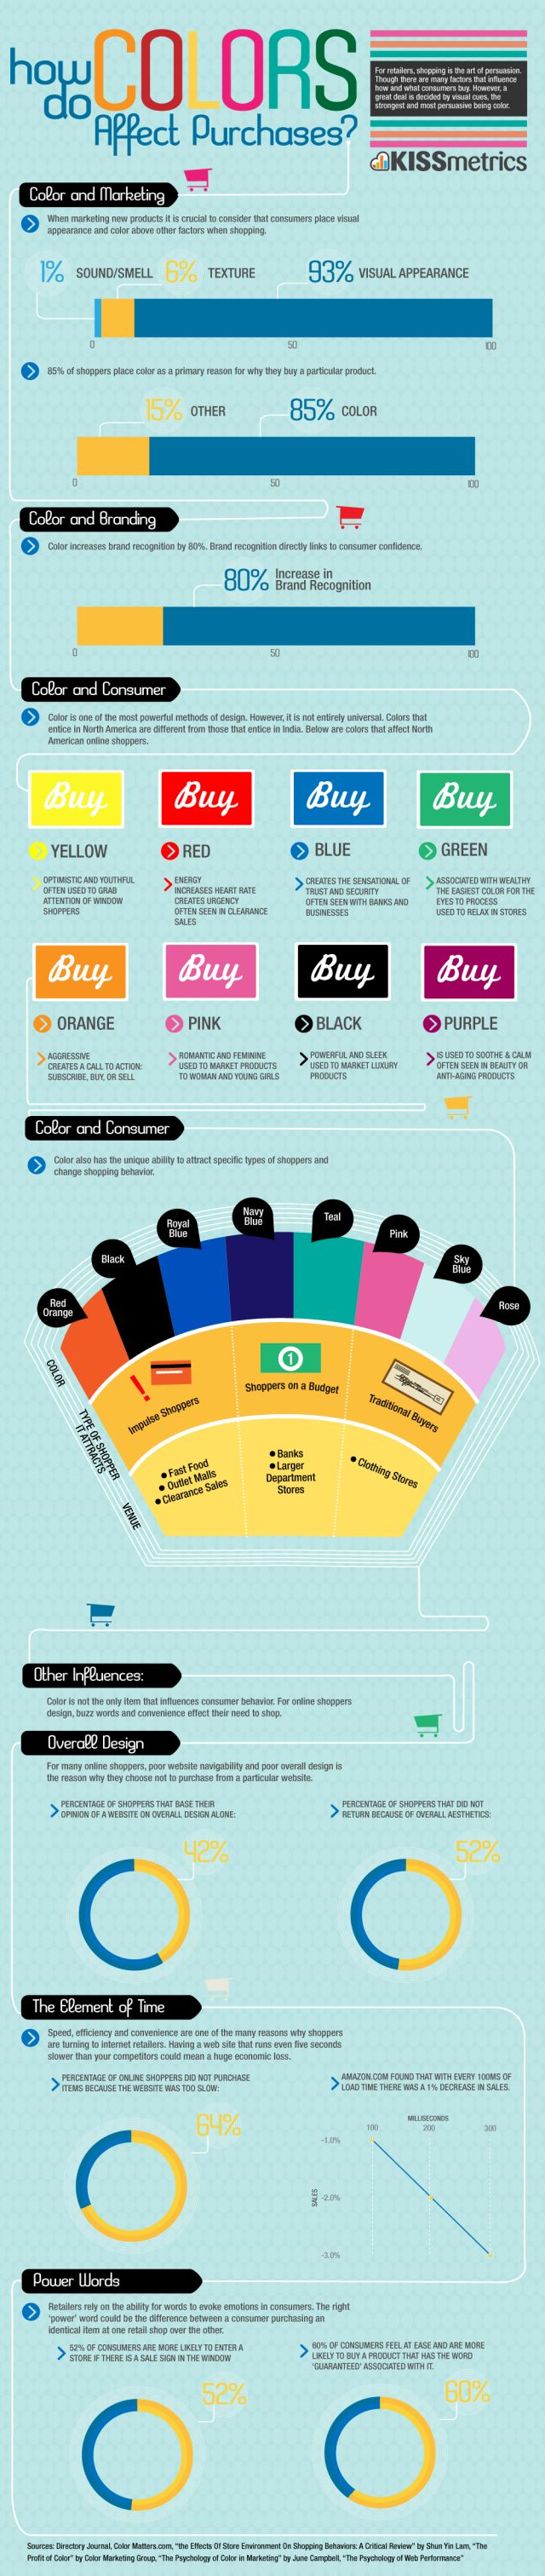 a fun infograph about how colors are used in marketing to affect purchases. I've always loved researching this stuff. (Scheduled via TrafficWonker.com)